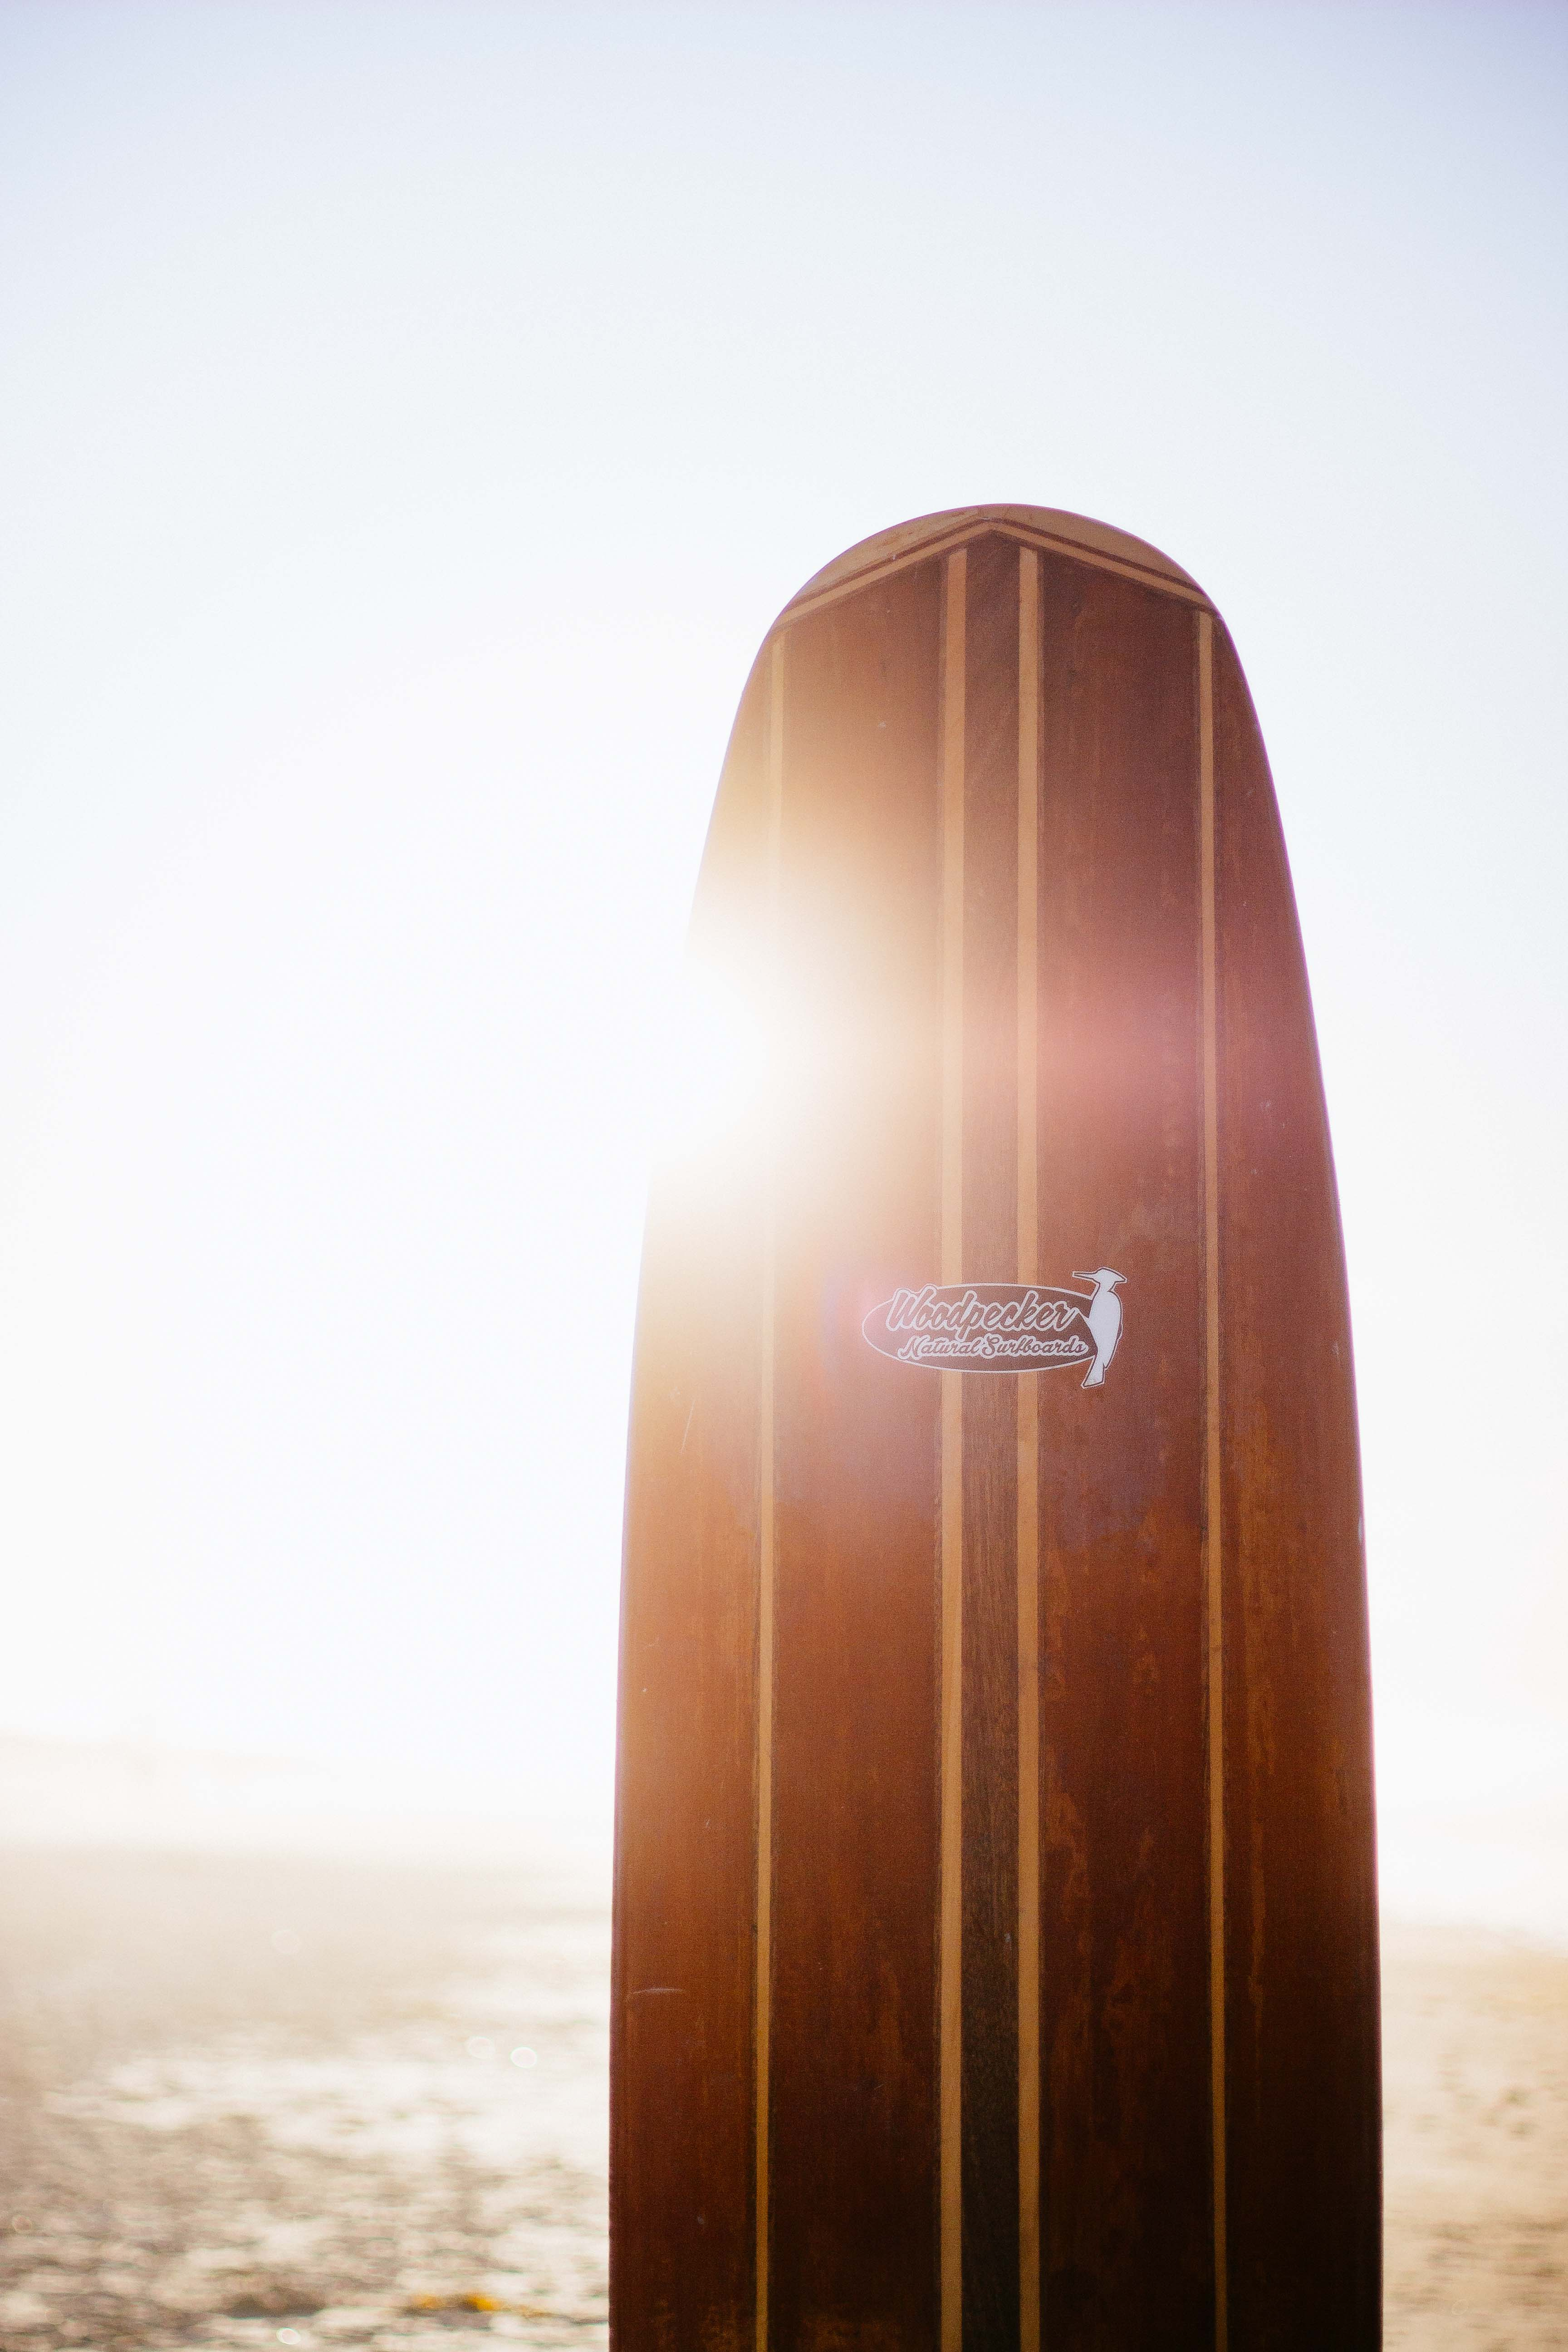 WOODPECKER Wooden Surfboard Manufacturer PASSIONrebel (16 of 29)